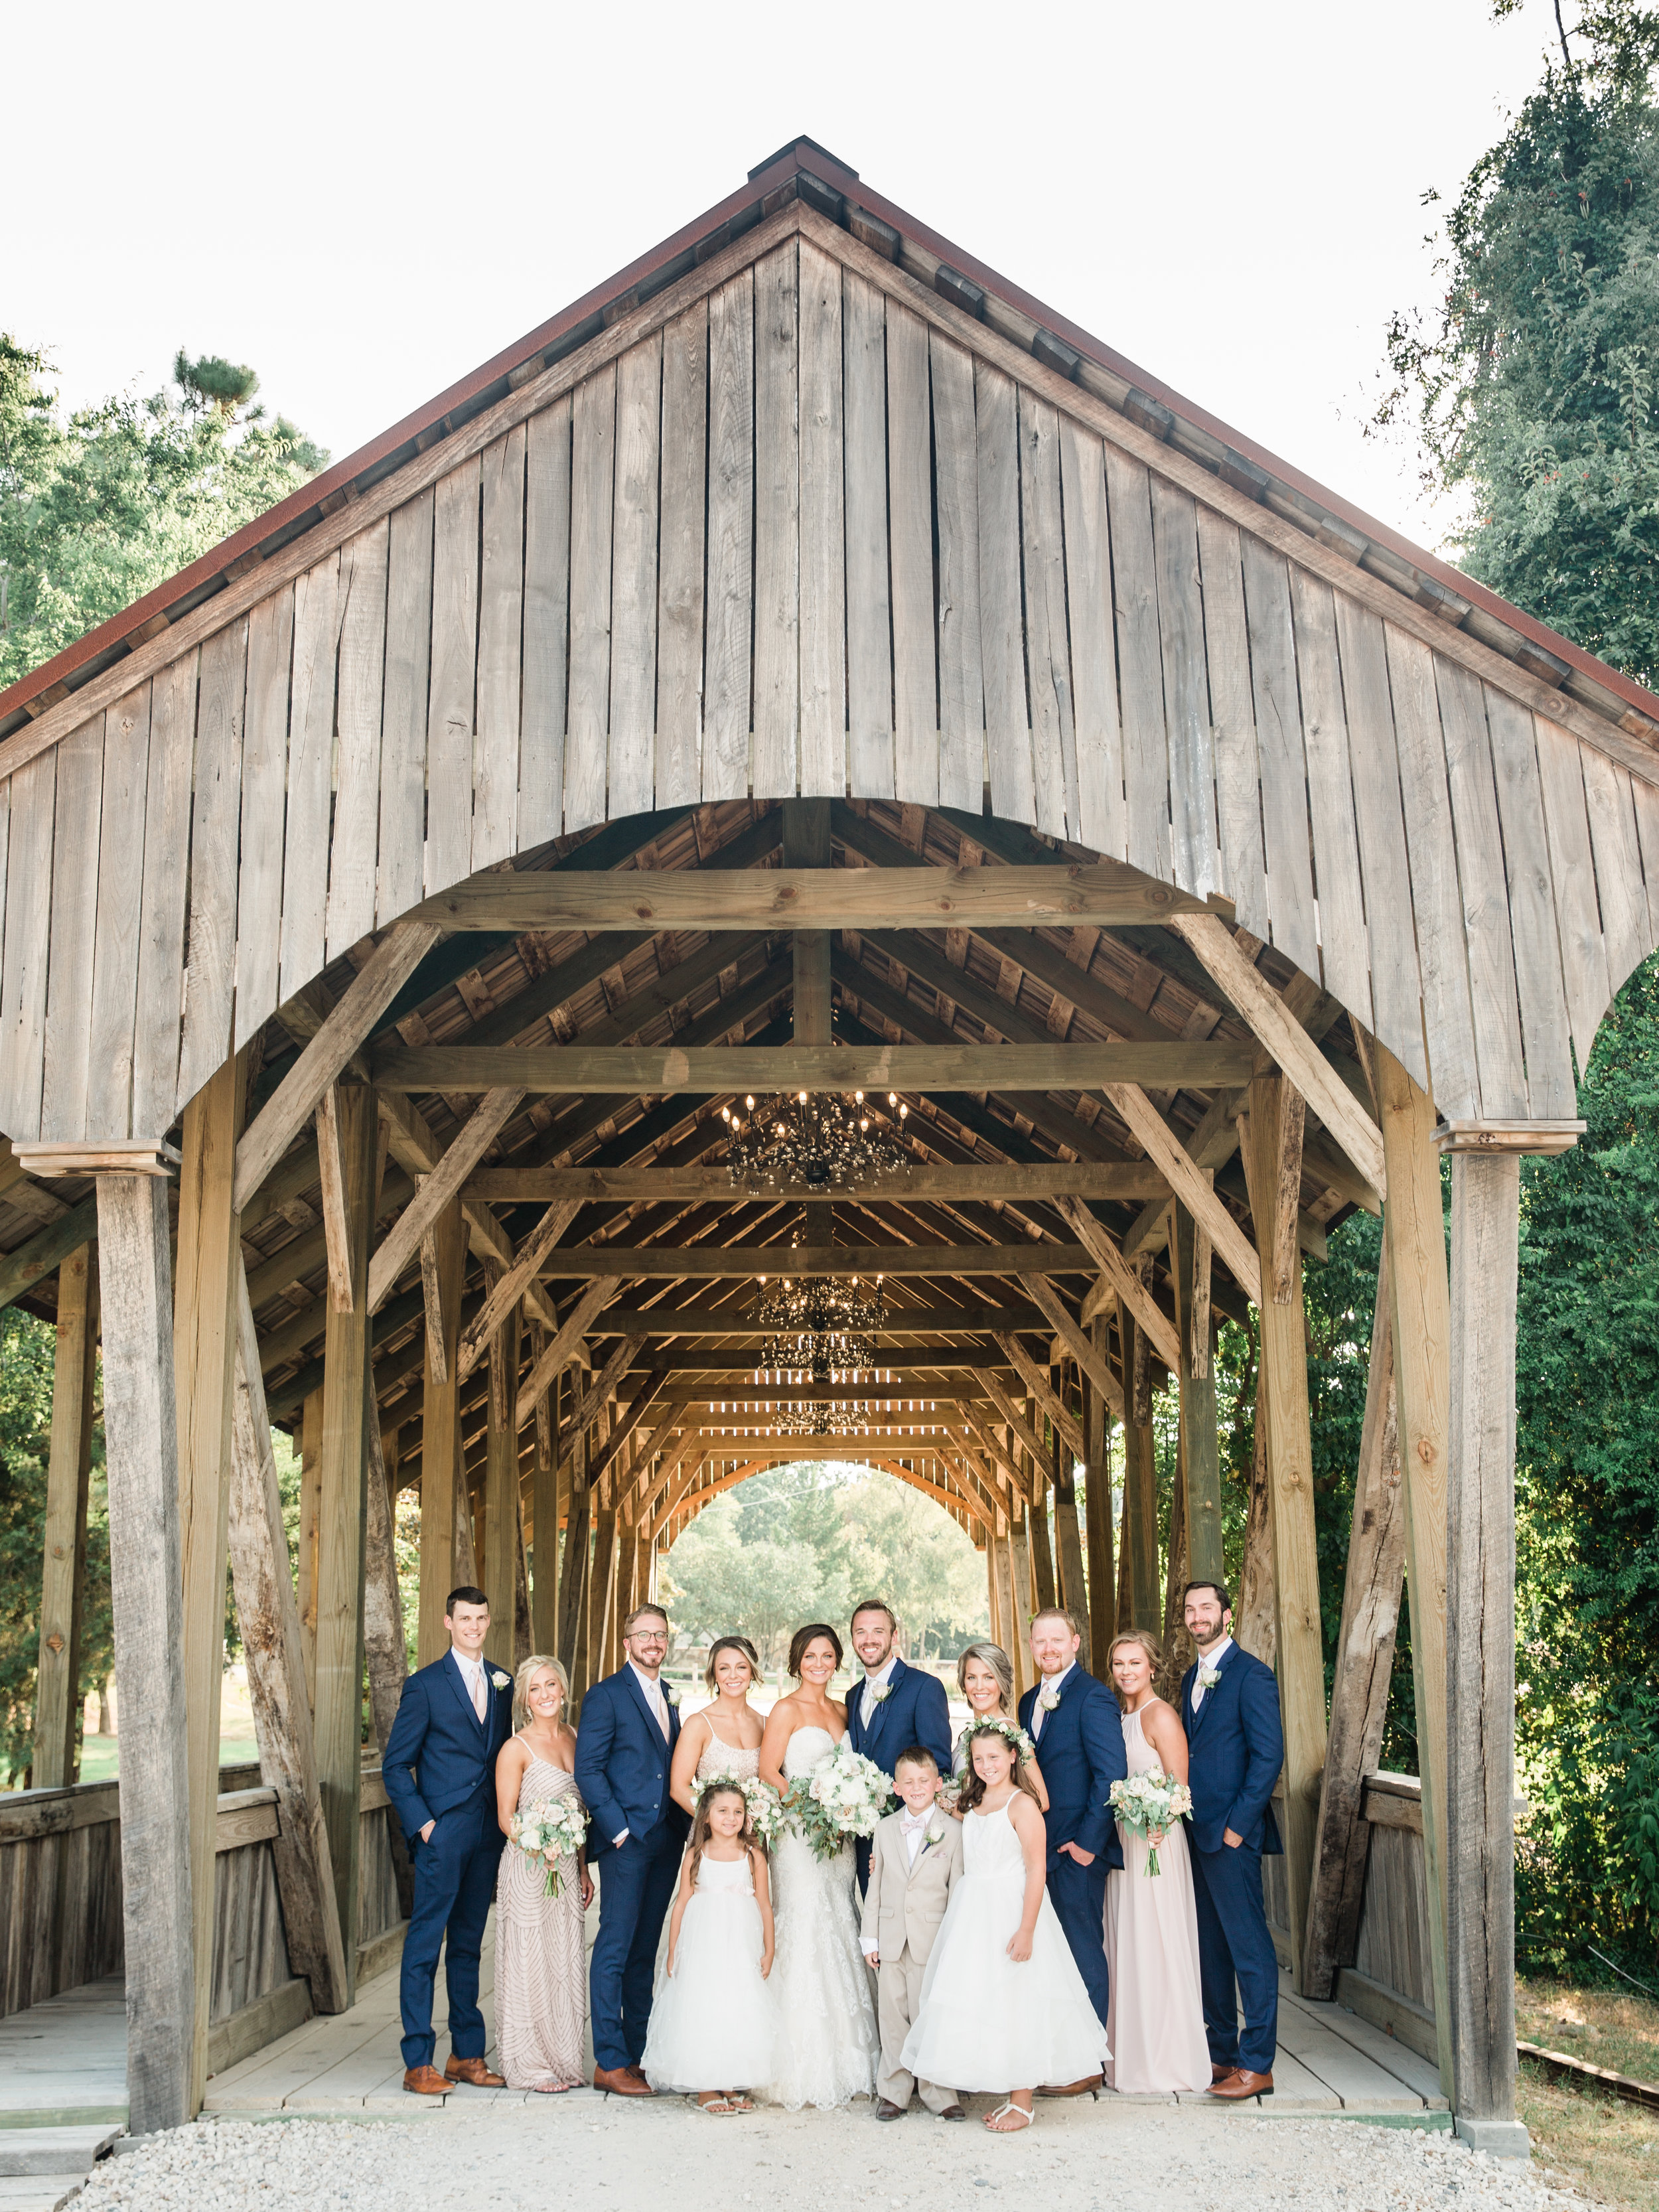 CourtneyandToddWedding-1526.jpg